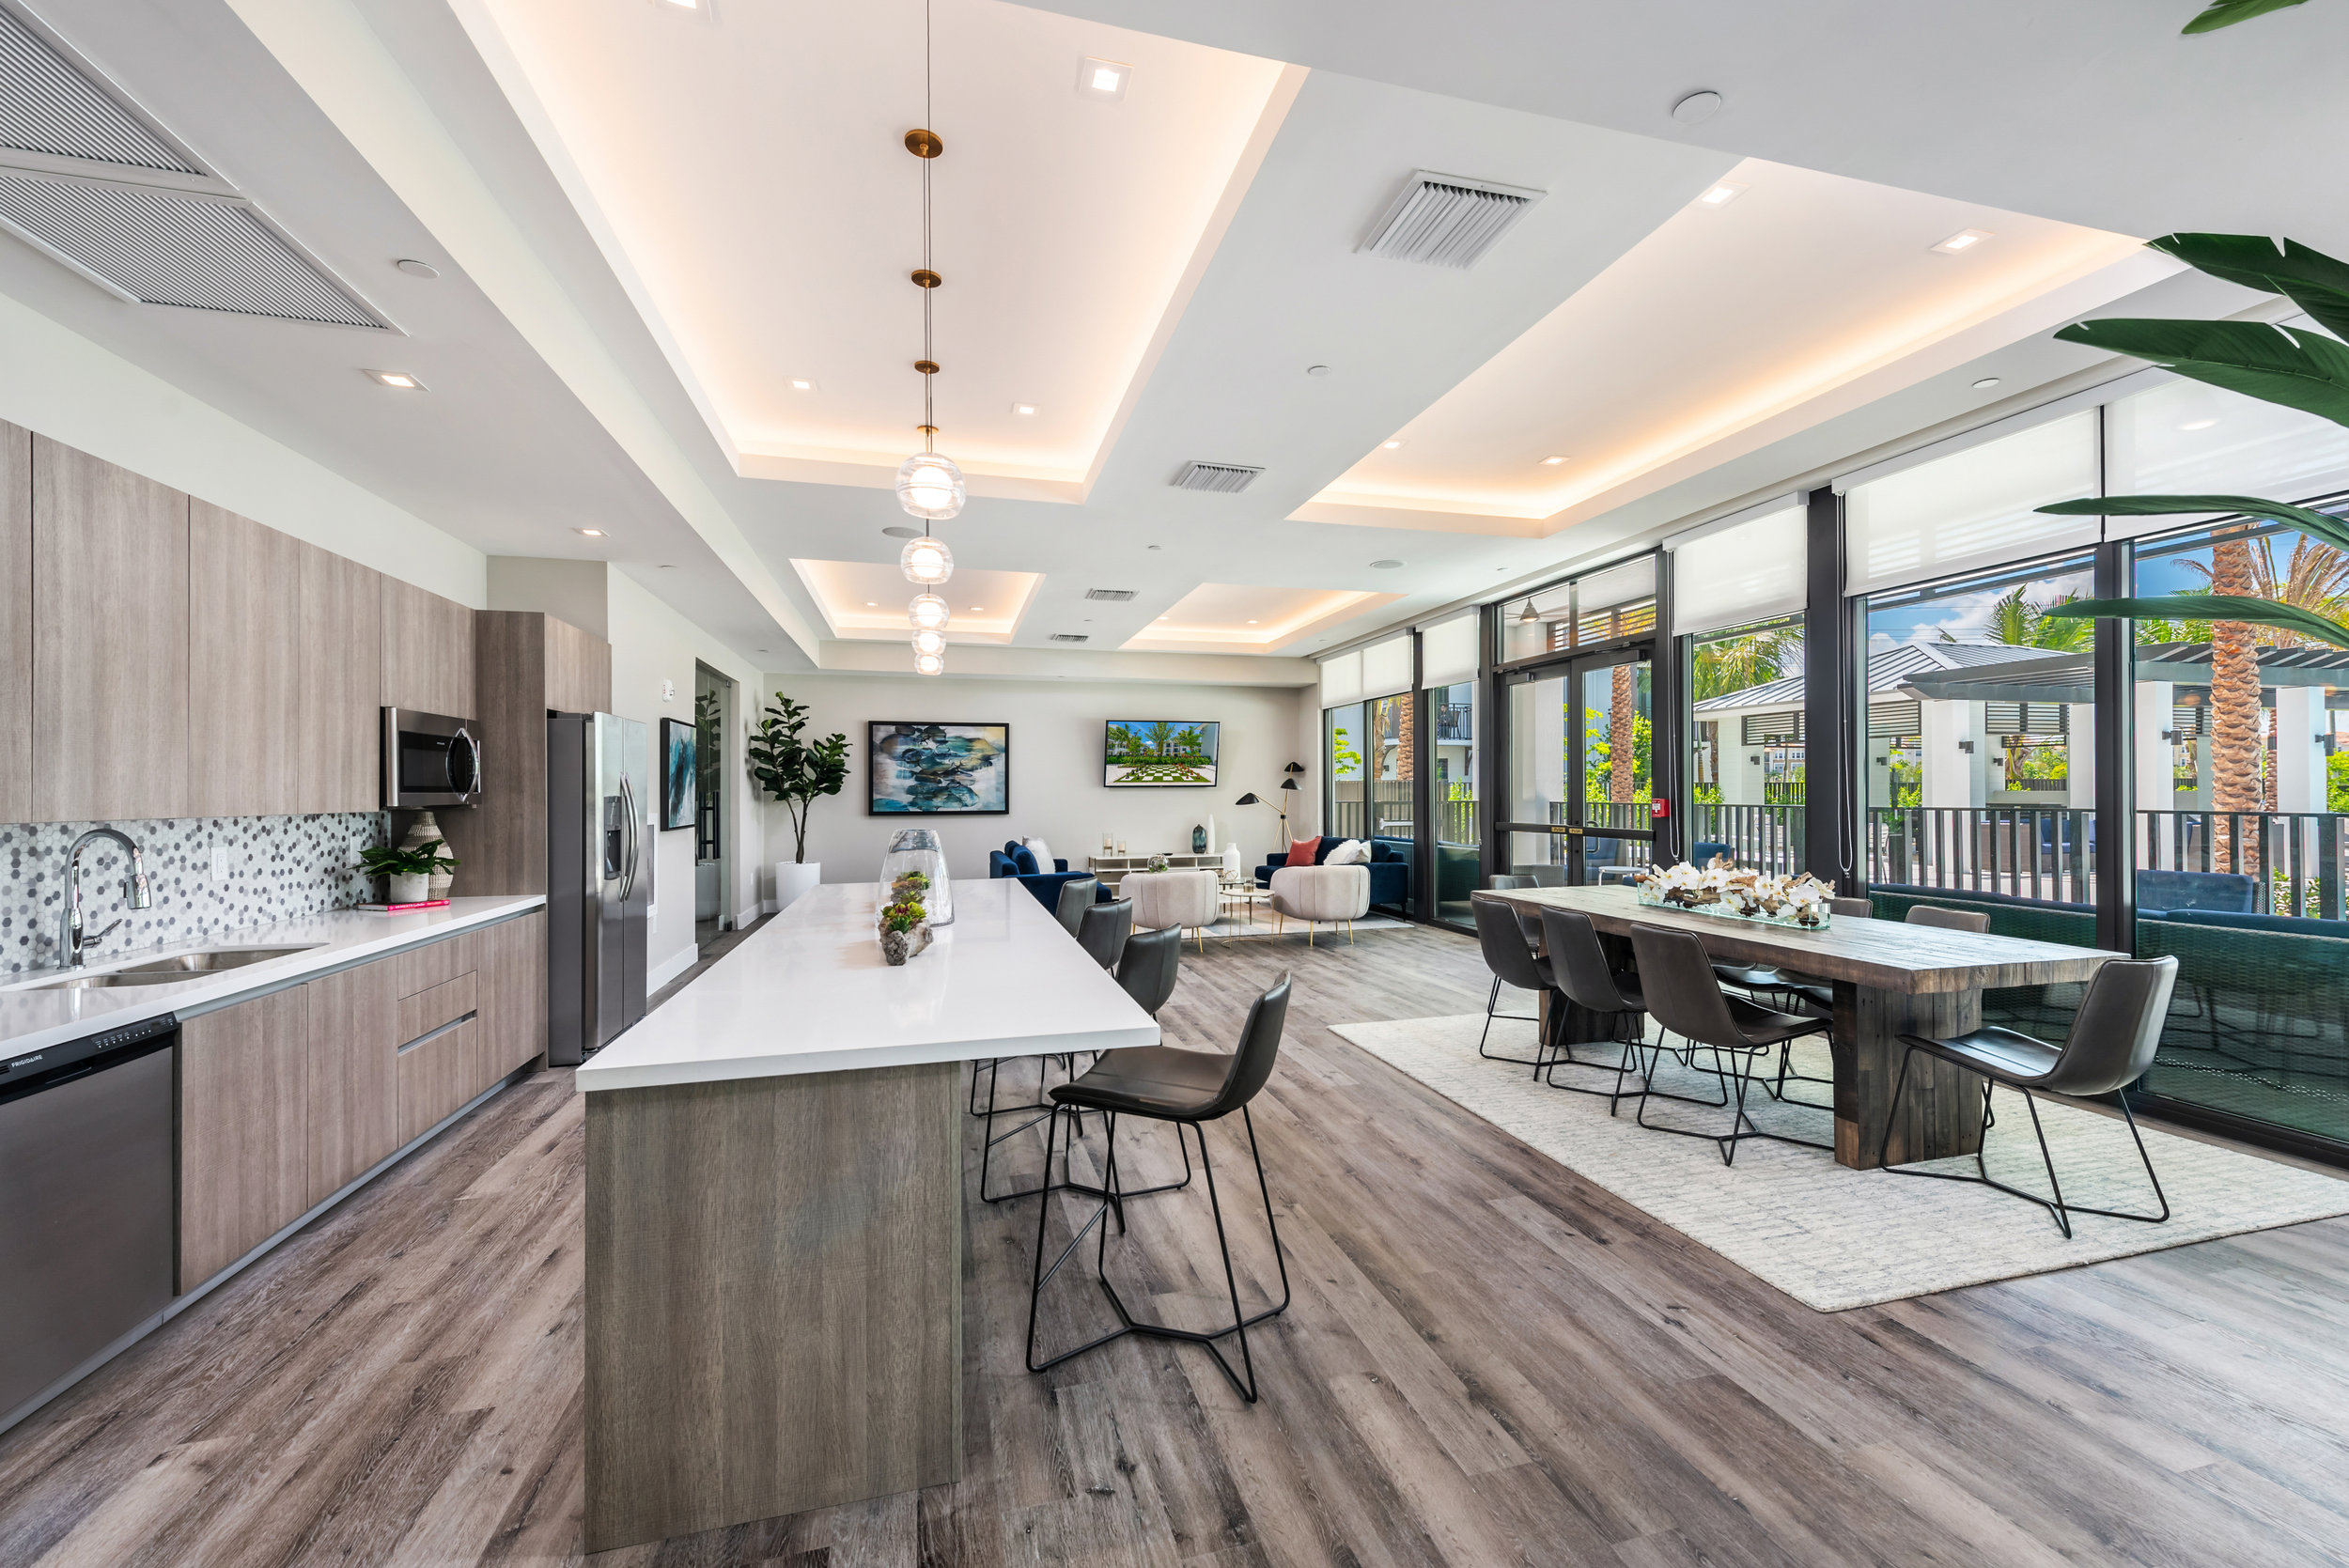 Terra Closes on $91 Million Refinancing For Pines Garden at City Center Apartments in Pembroke Pines